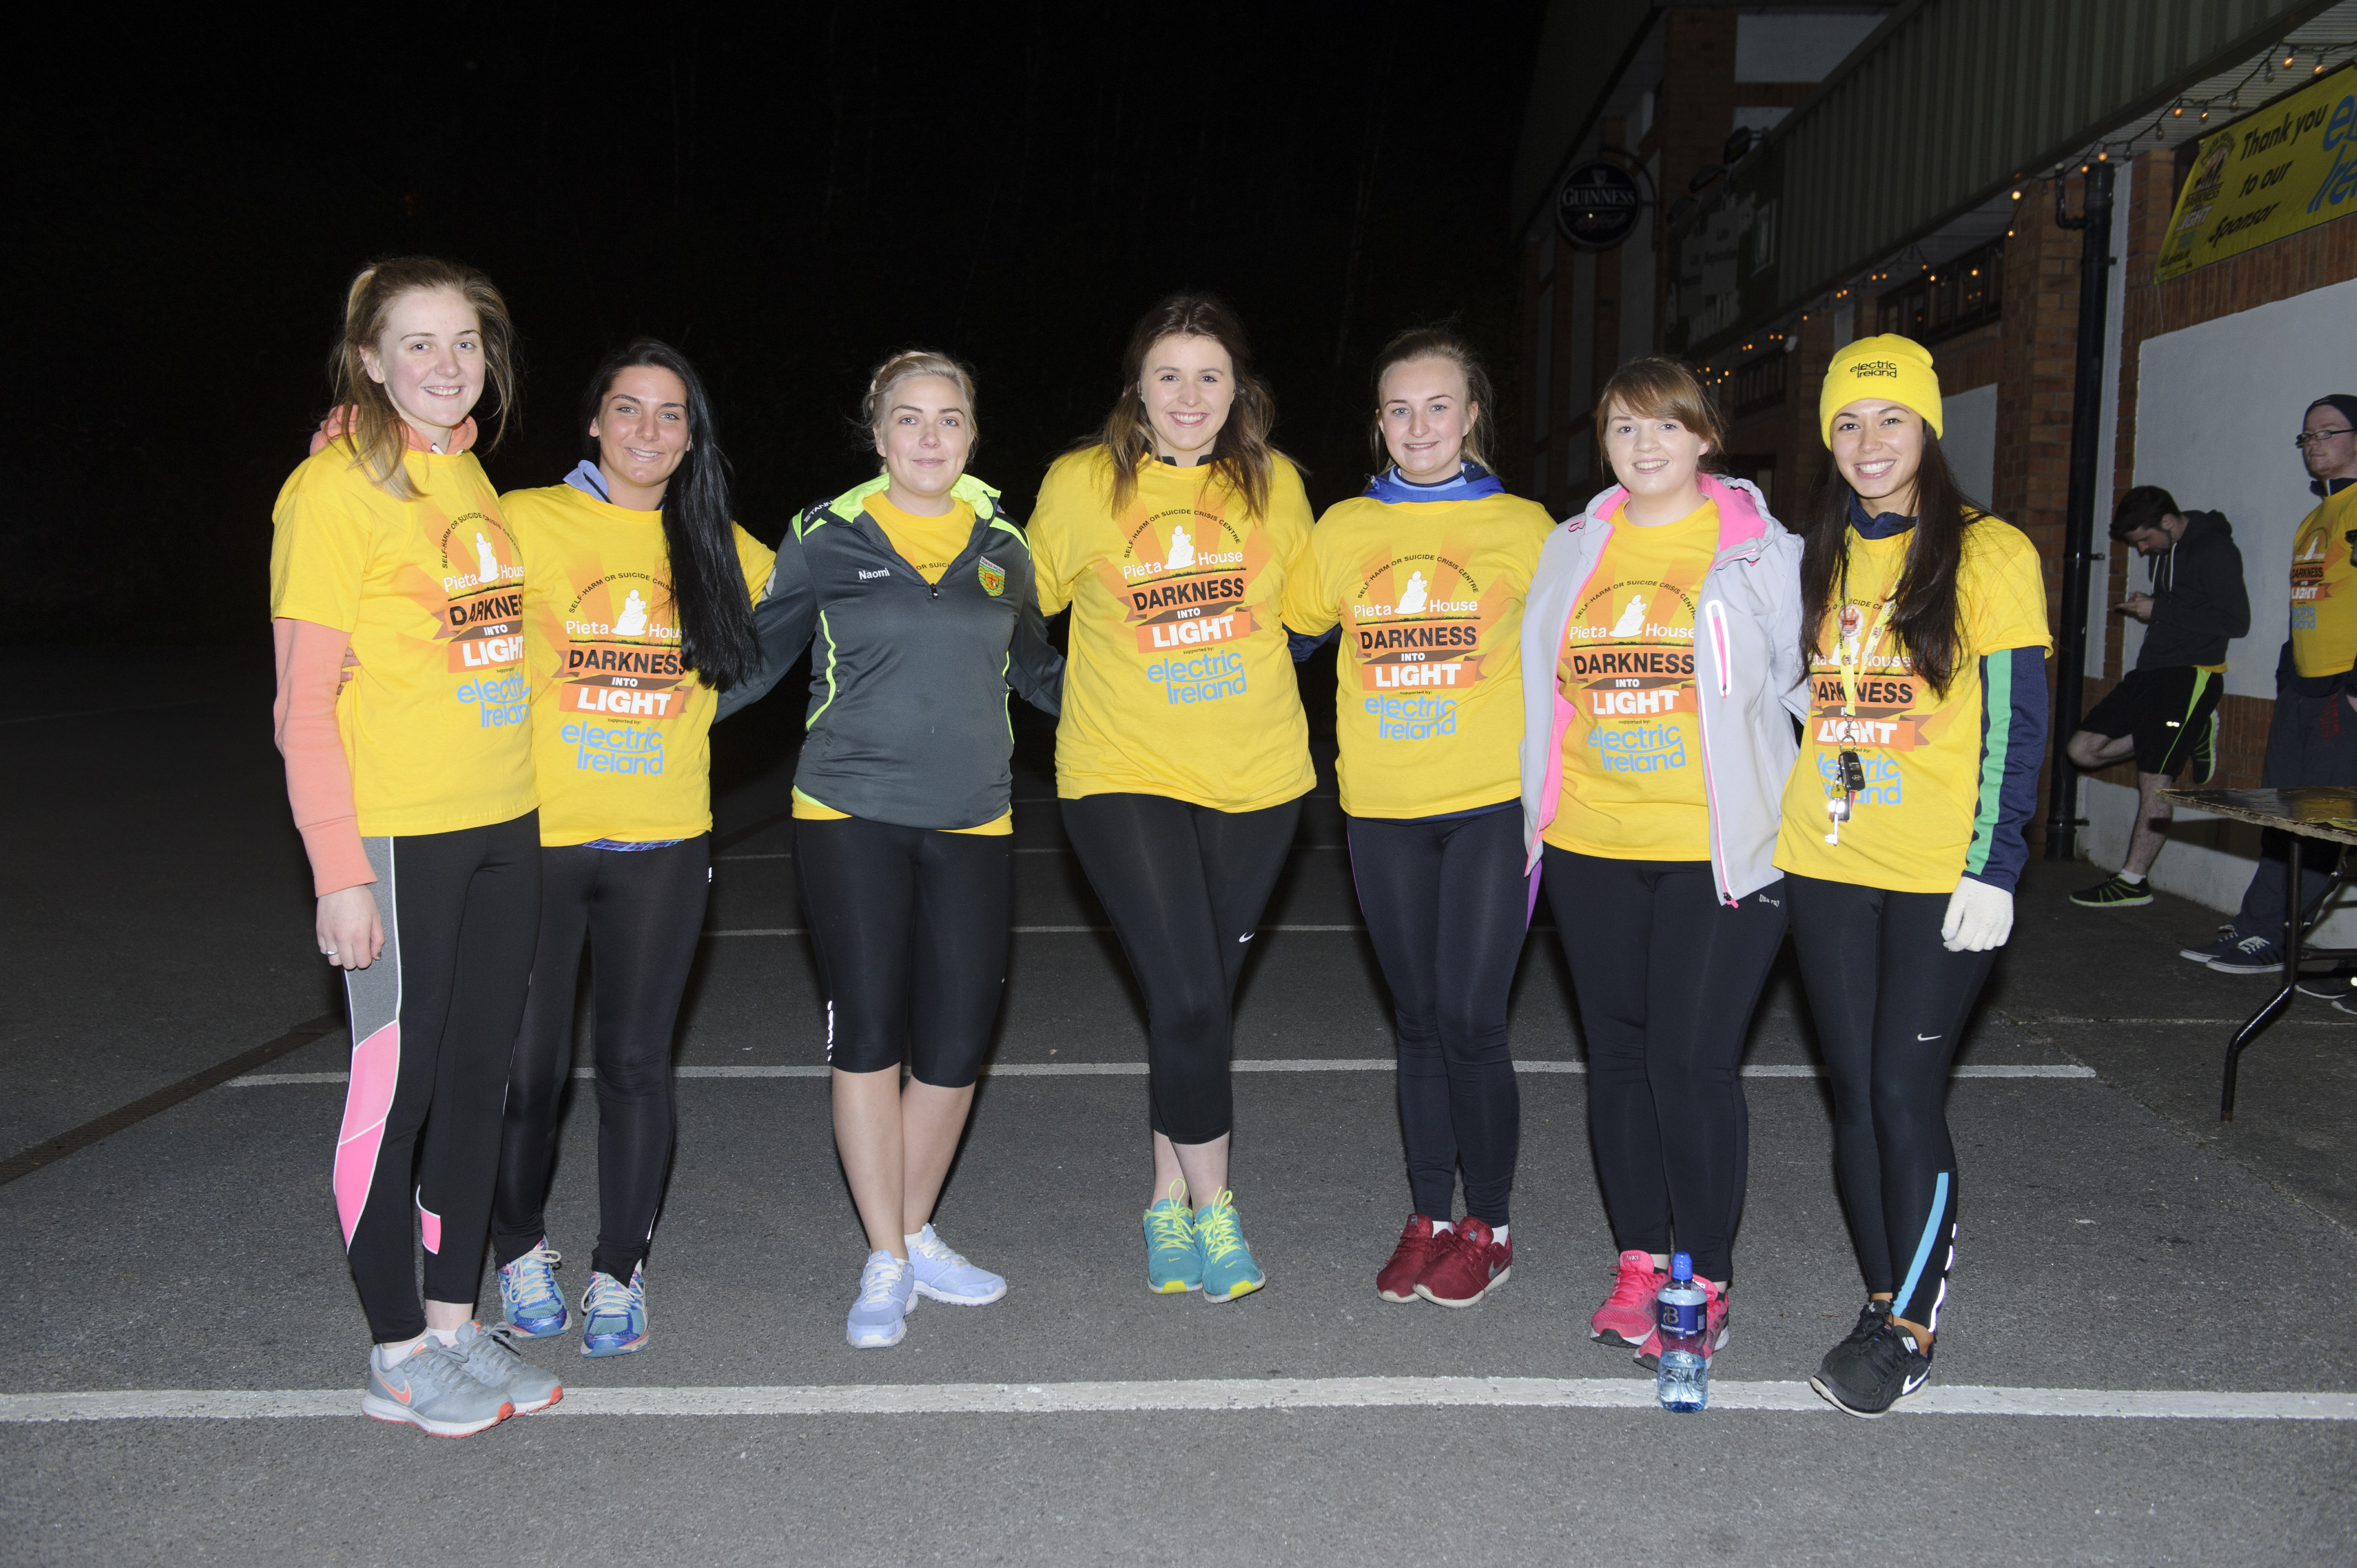 Some of the group from the Monaghan Rose of Tralee who took part in the Darkness Into Light at Monaghan Harps. Included are (L-R) Sinead McCarey, Rebecca Duffy, Naomi Hutchinson, Grainne O'Connor, Elaine McKiernan, Cáit Beggan and Eimear Galligan. ©Rory Geary/The Northern Standard